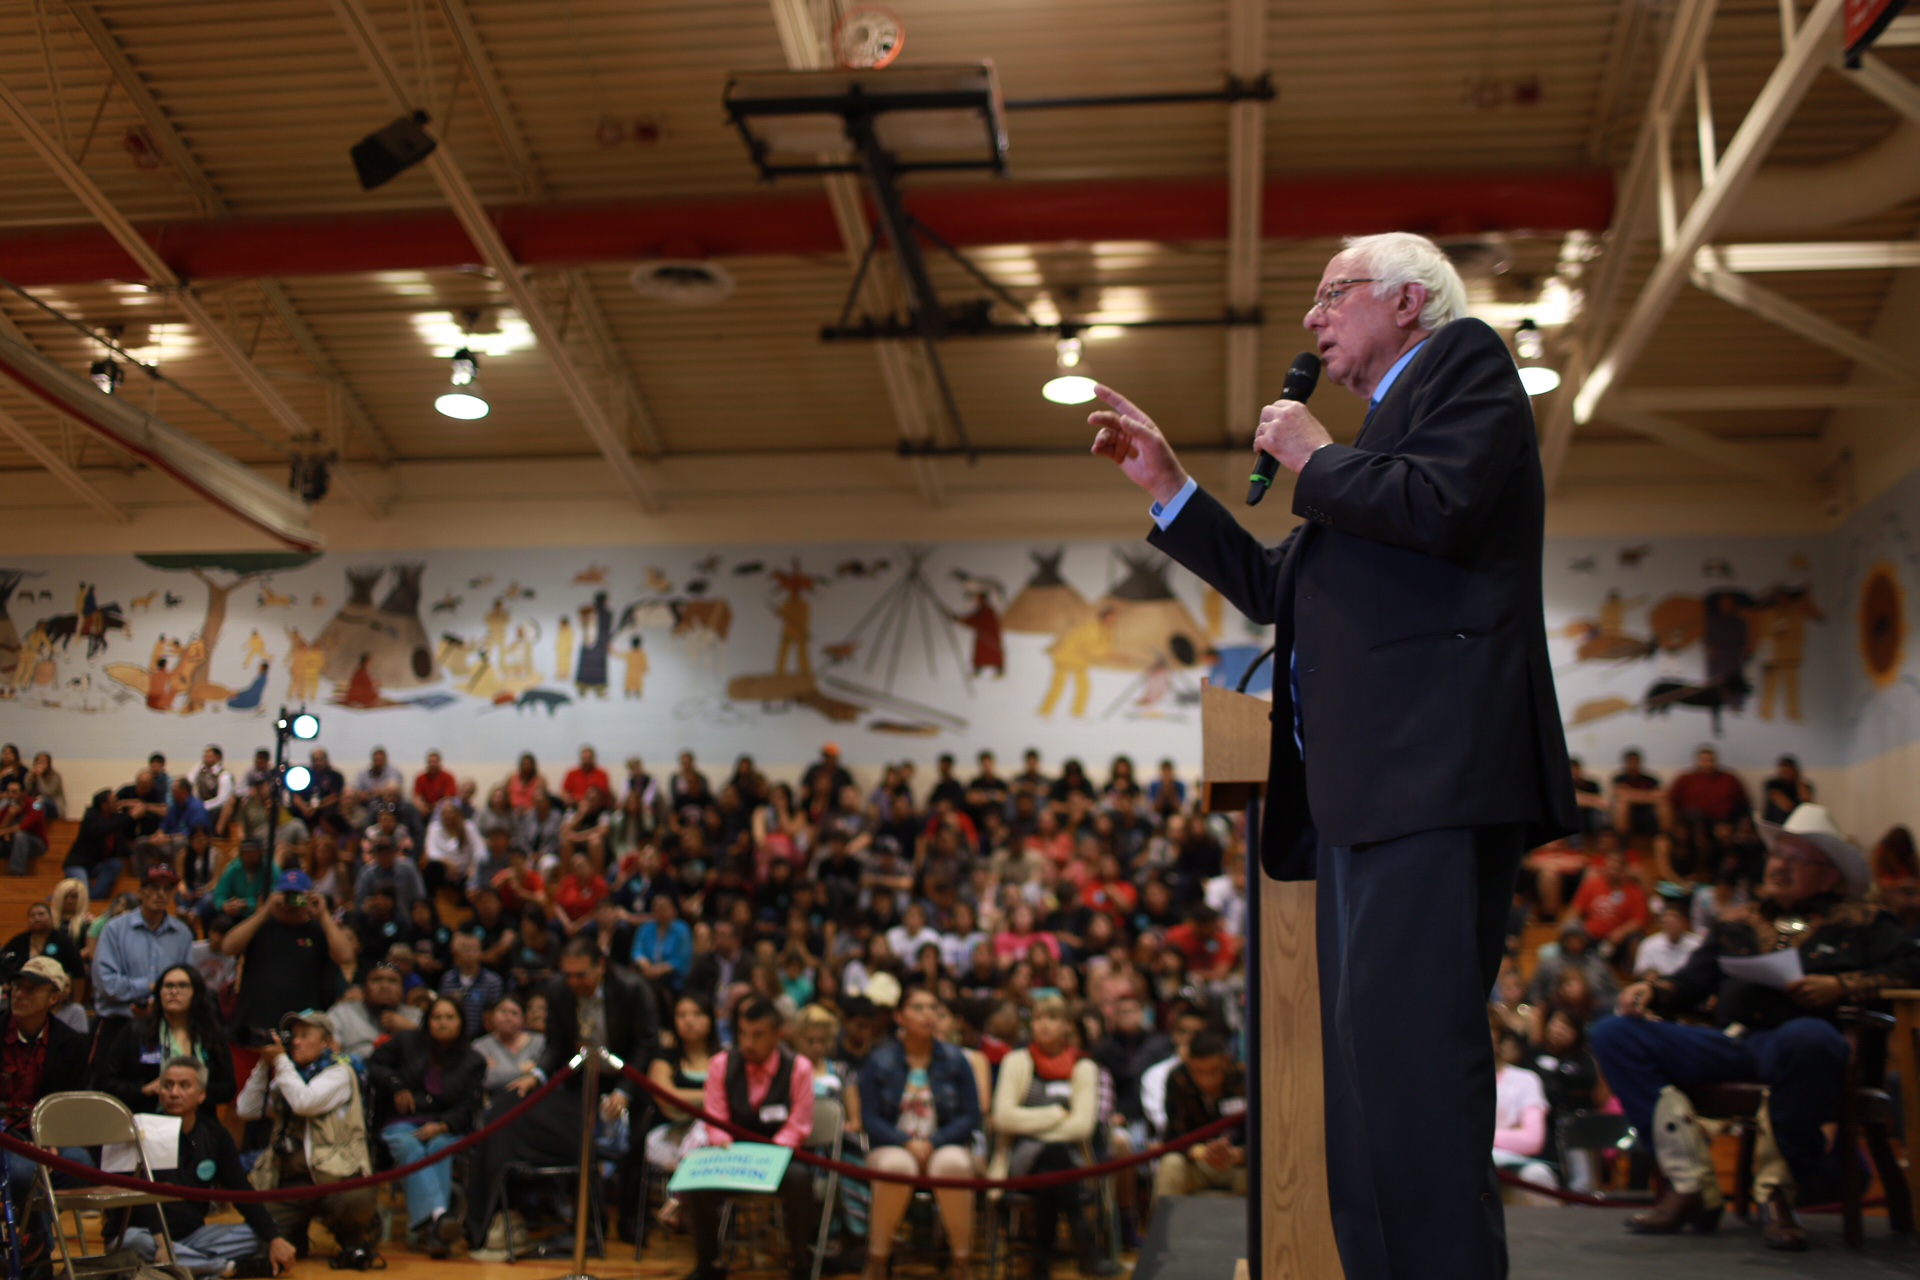 LaDonna Harris and Samuel Goodhope: Bernie Sanders shares our cultural values